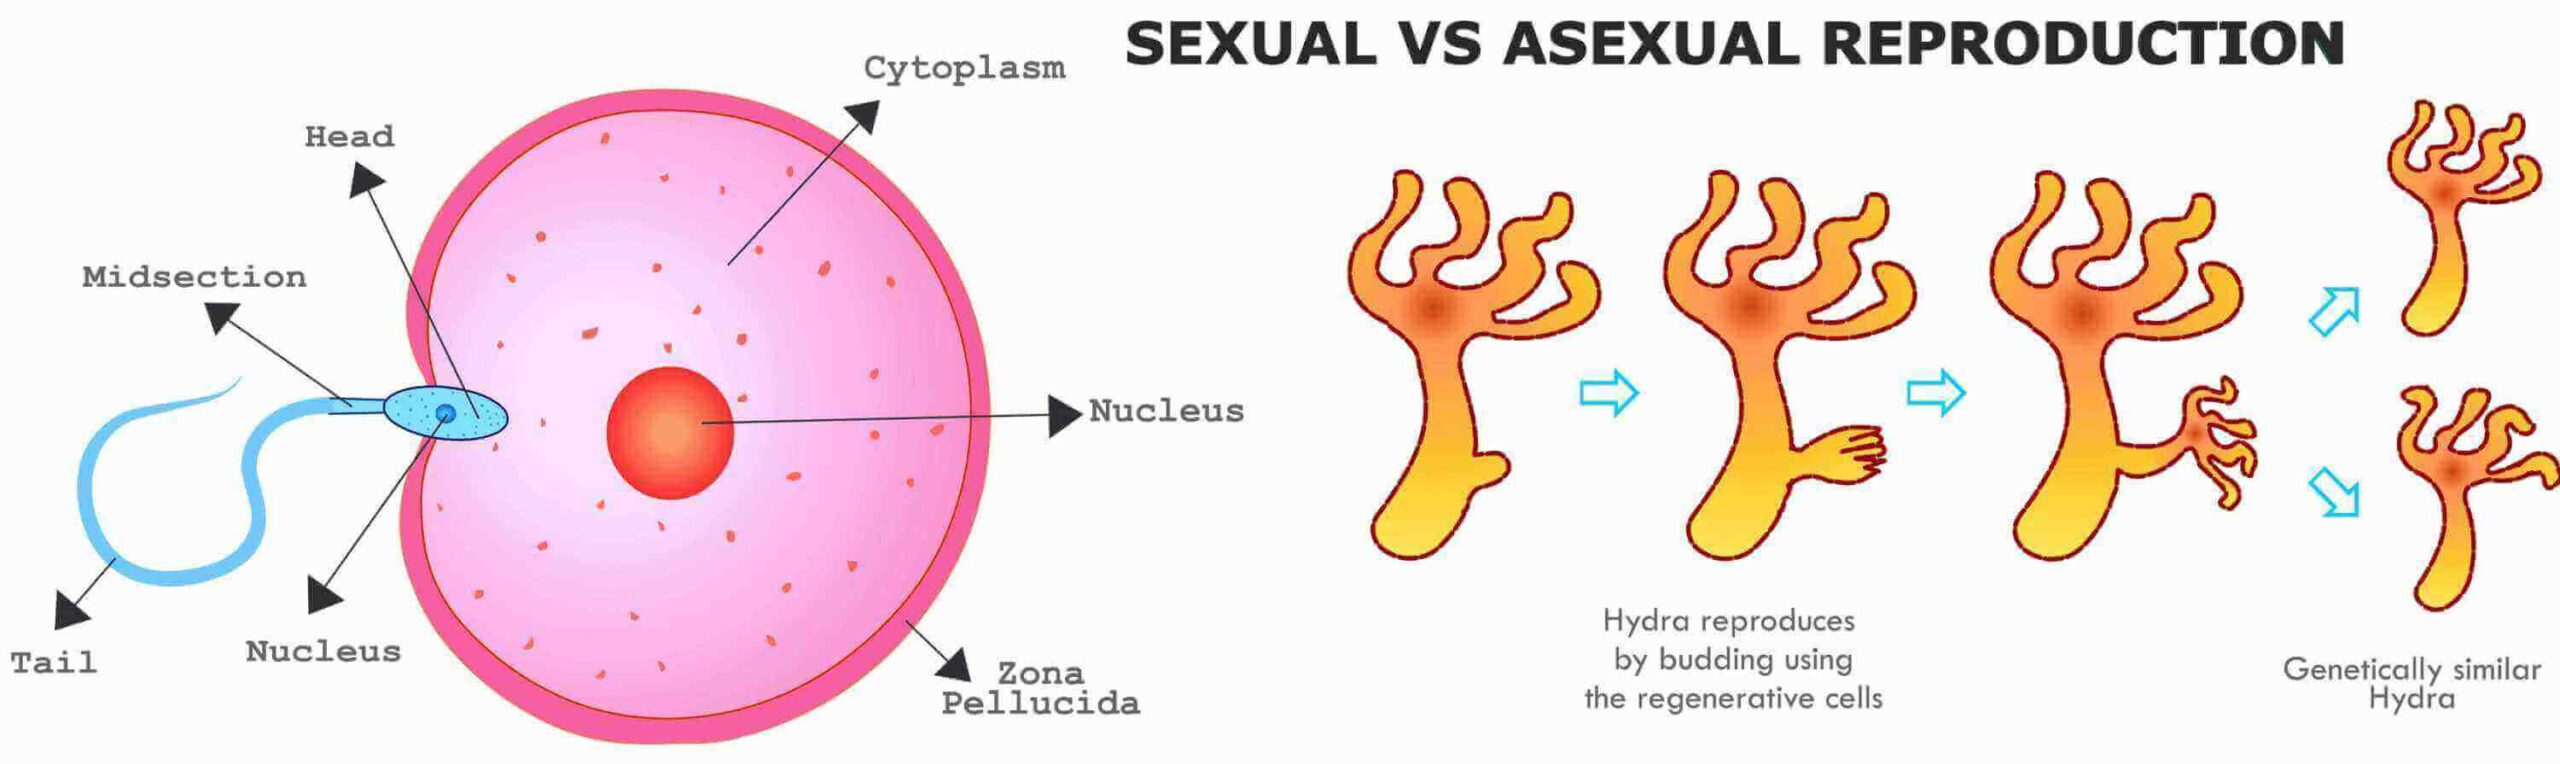 12 Facts About Sexual And Asexual Reproduction That Will Make You Think Twice